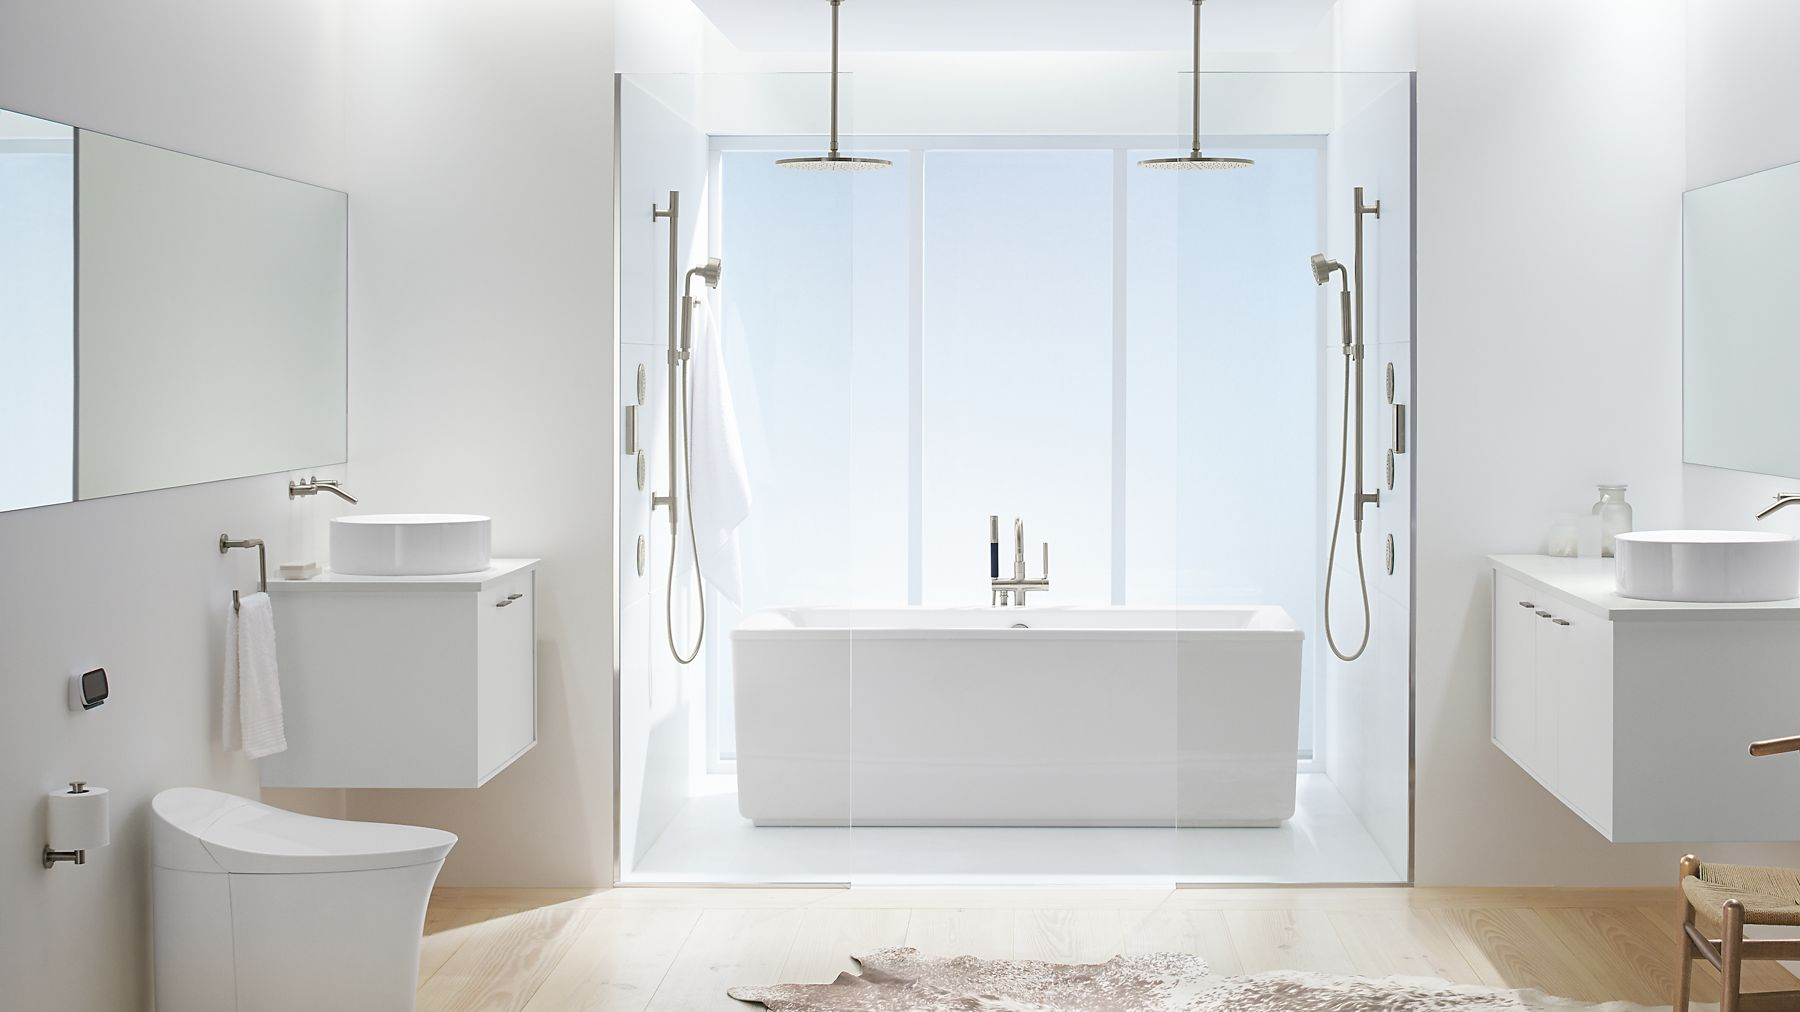 M And S Bathroom Accessories Kohler Toilets Showers Sinks Faucets And More For Bathroom